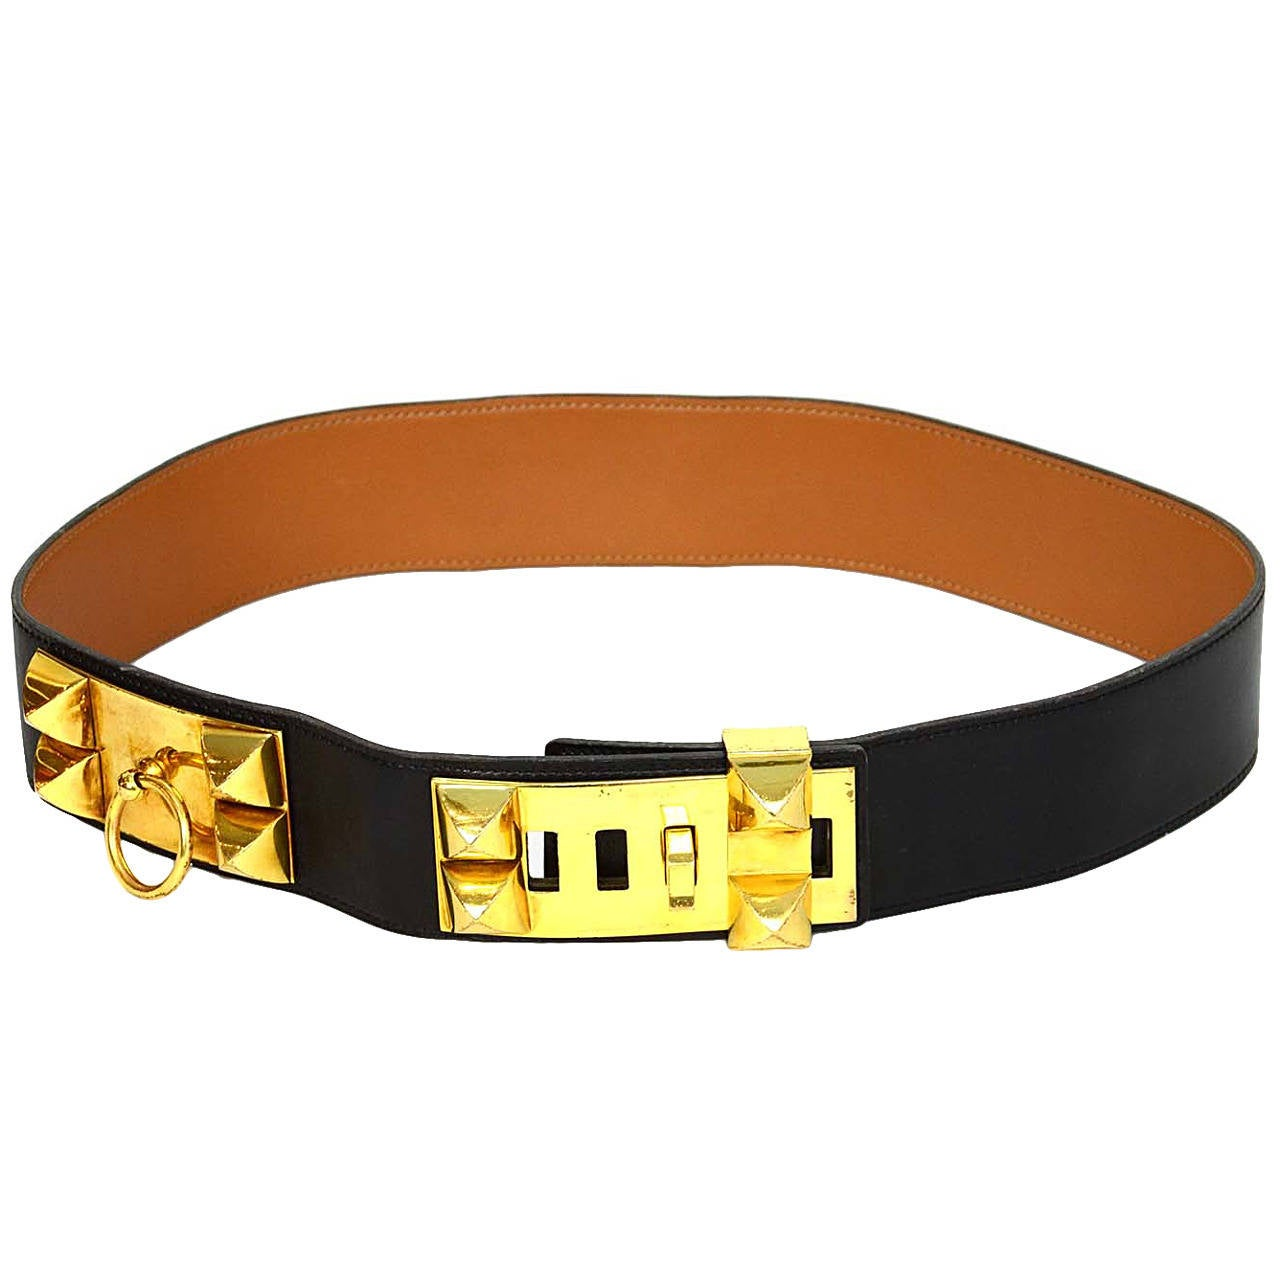 Vintage Herm��s Belts - 51 For Sale at 1stdibs